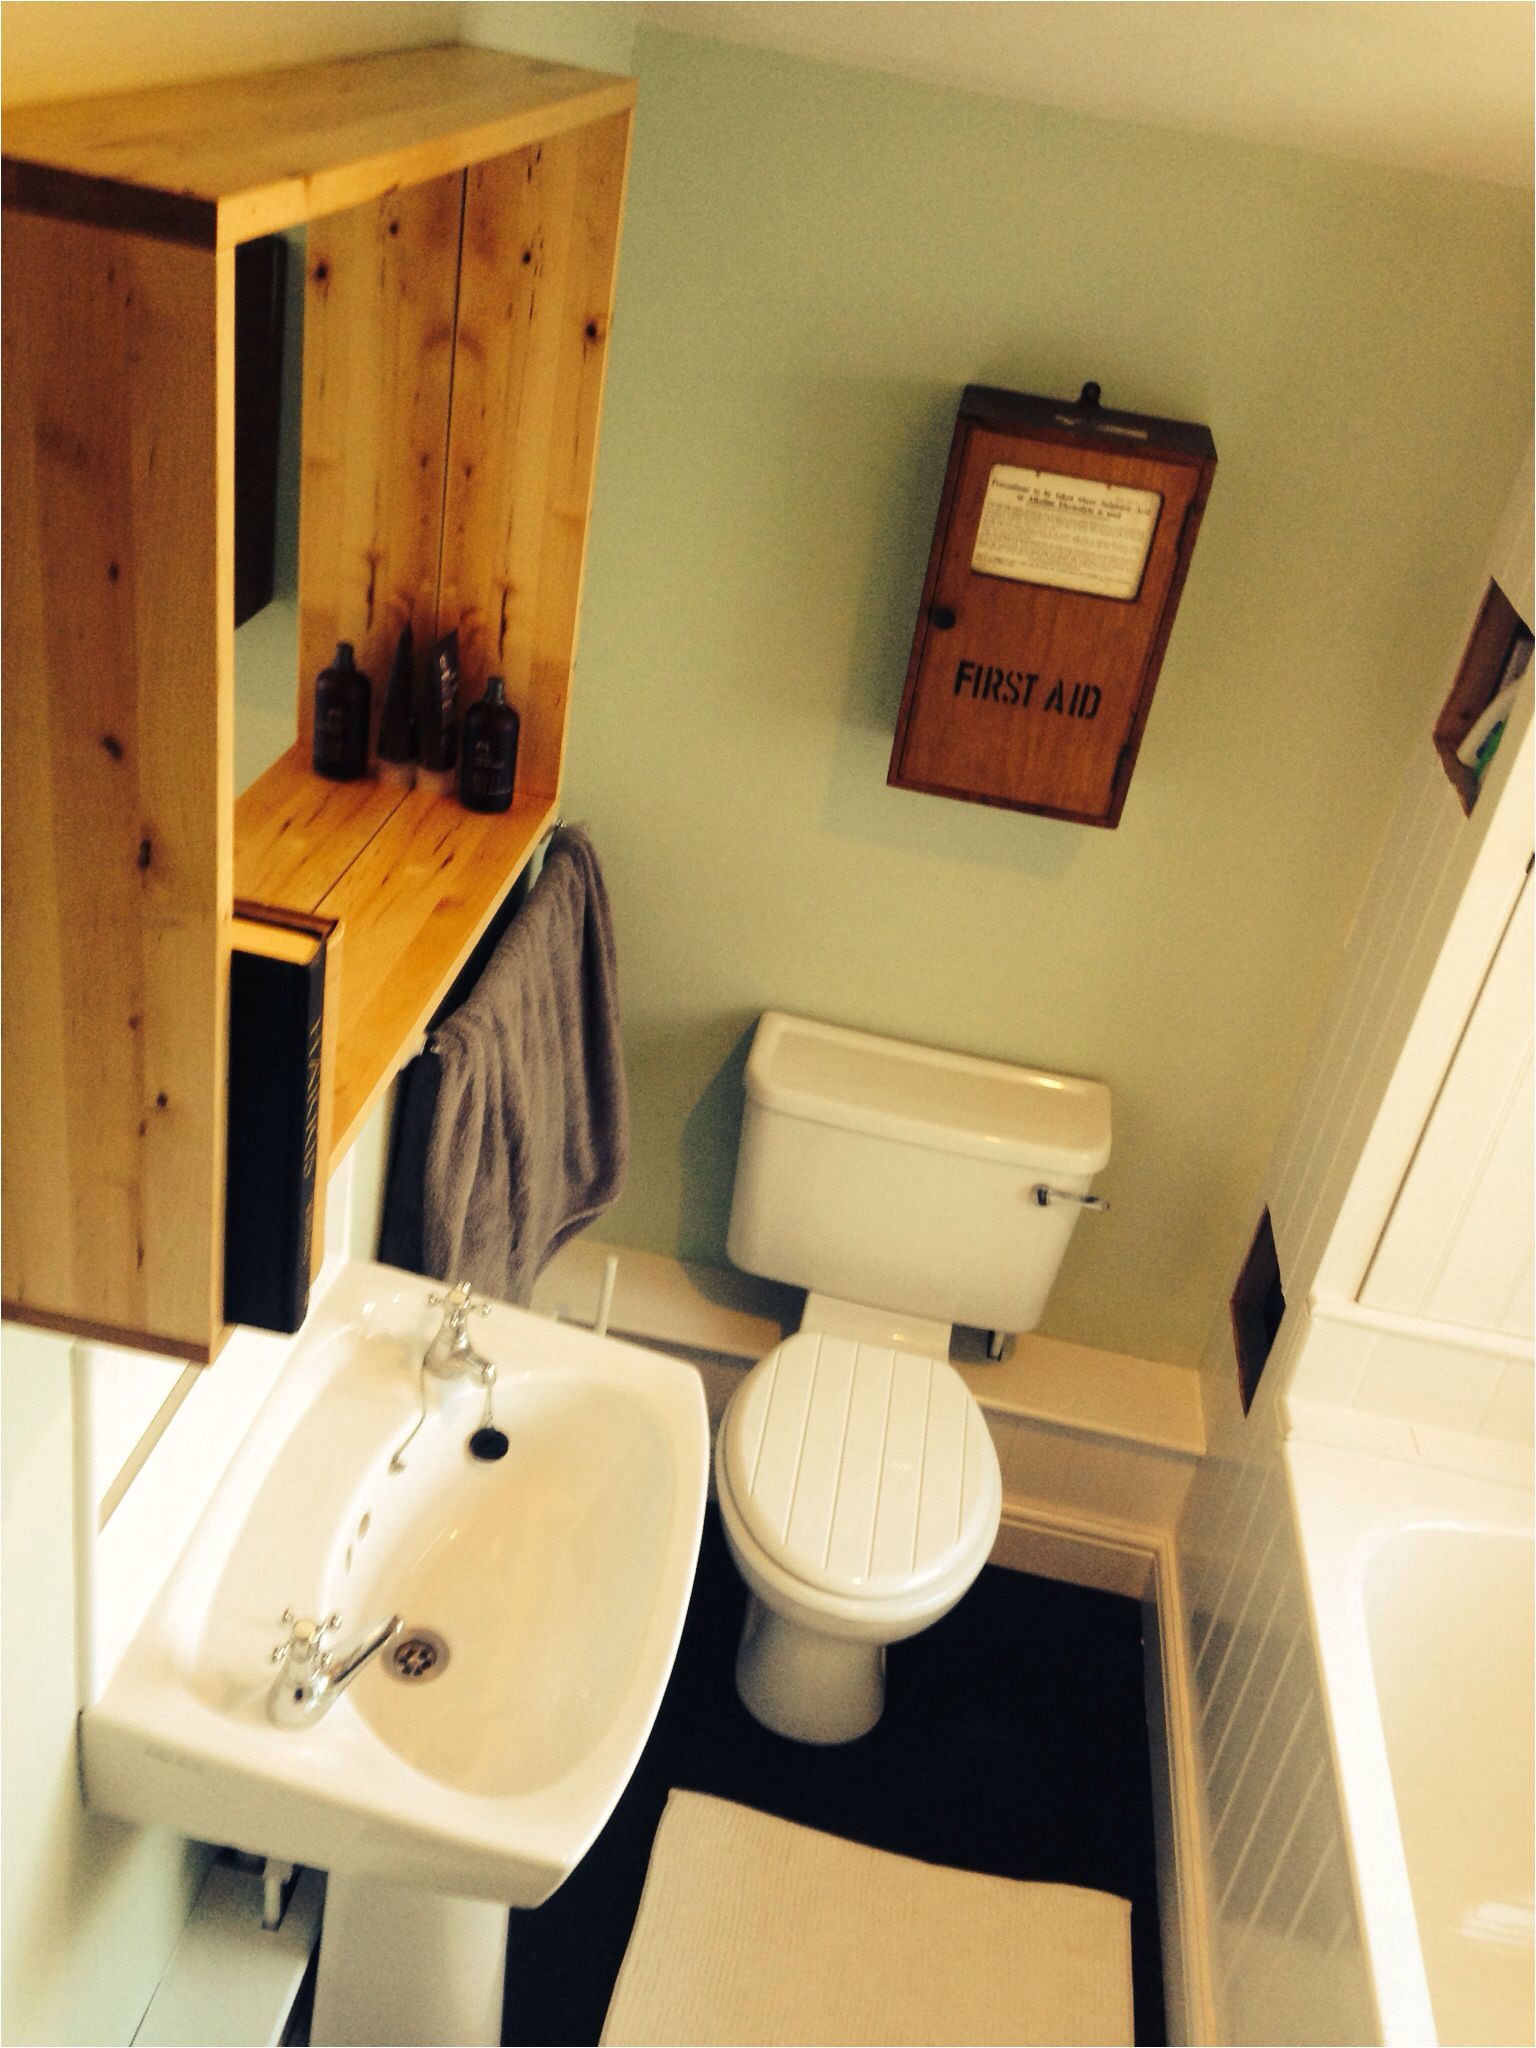 new bathroom with willow tree by dulux and an old first aid box dulux